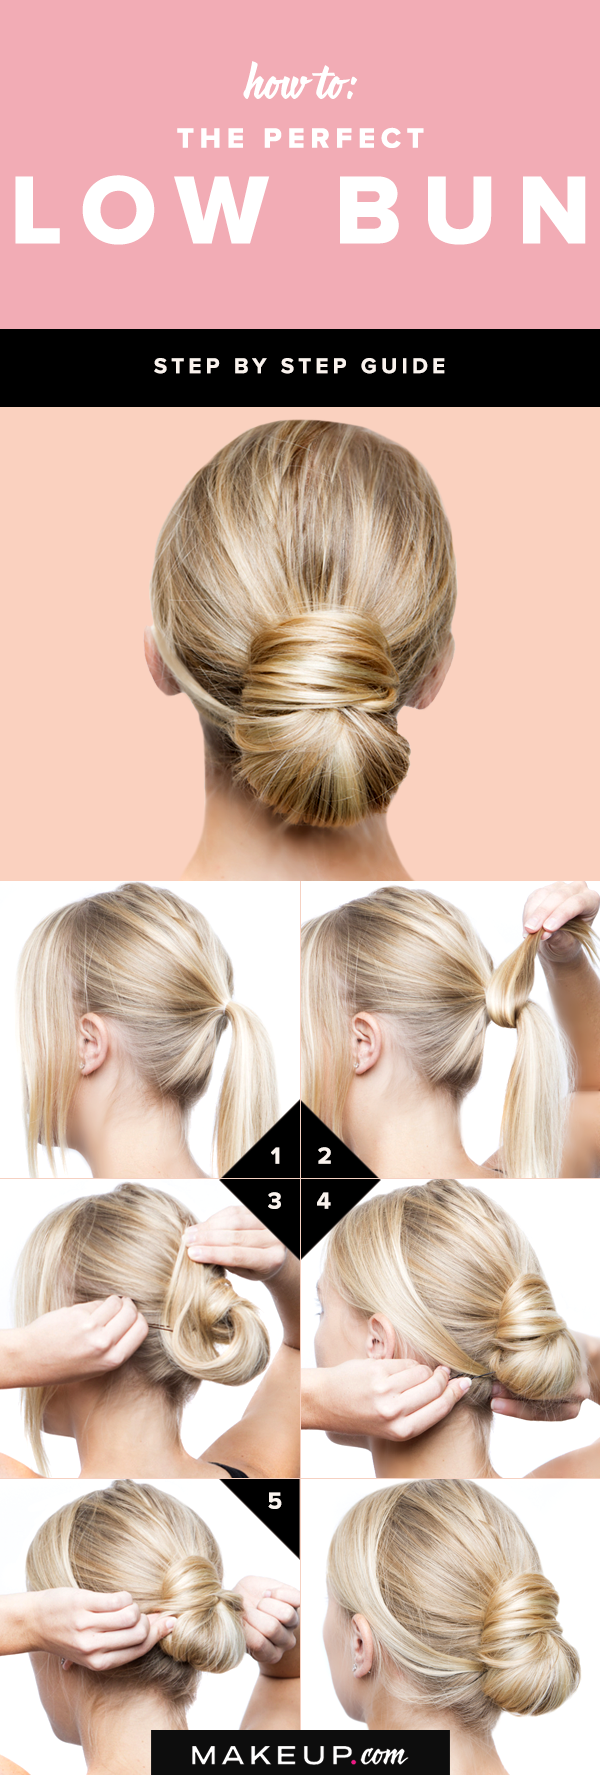 steps to create the perfect low bun office hairstyle pinterest